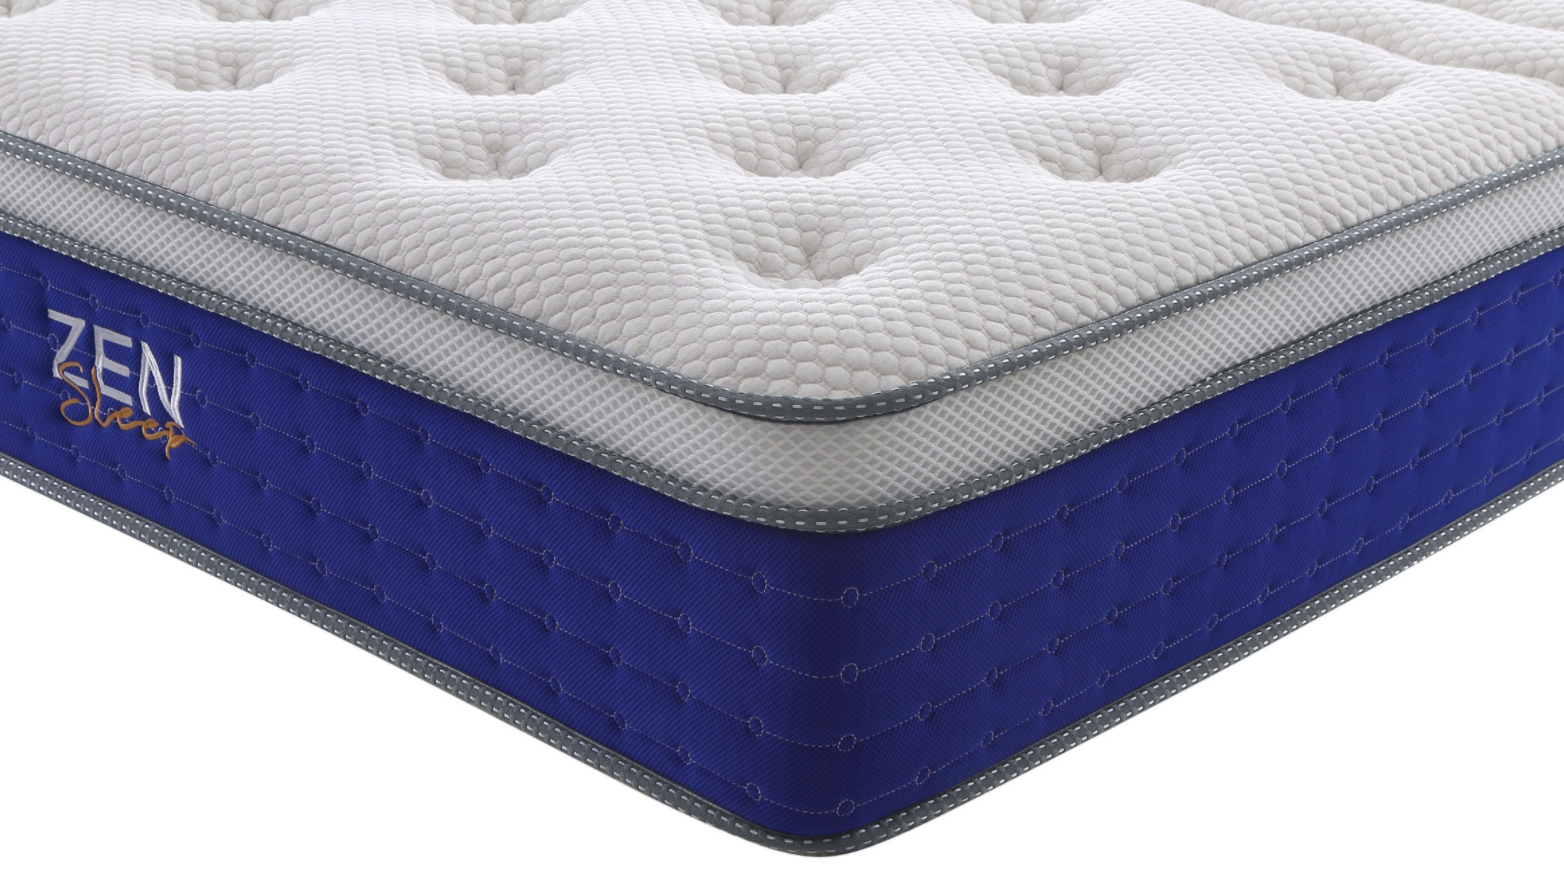 Zen Sleep Hybrid Mattress